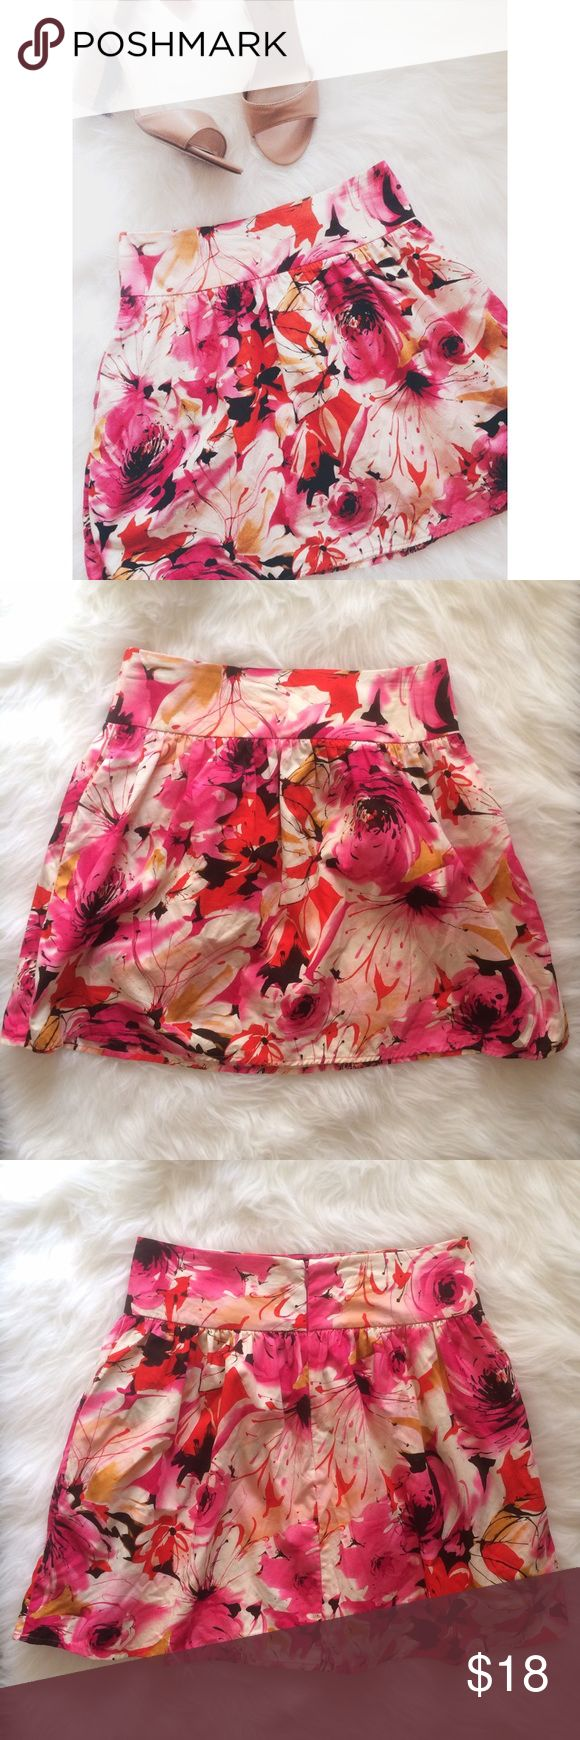 • Forever 21 • Fuchsia Floral Skirt This skirt is gorgeous! It's perfect for Spring! No noticeable stains. Pockets on the sides. Zipper on the back. 0208173.  ✅Reasonable offers welcome! ✅BUNDLE DISCOUNTS! No trades/paypal/other apps. No lowball offers. Forever 21 Skirts